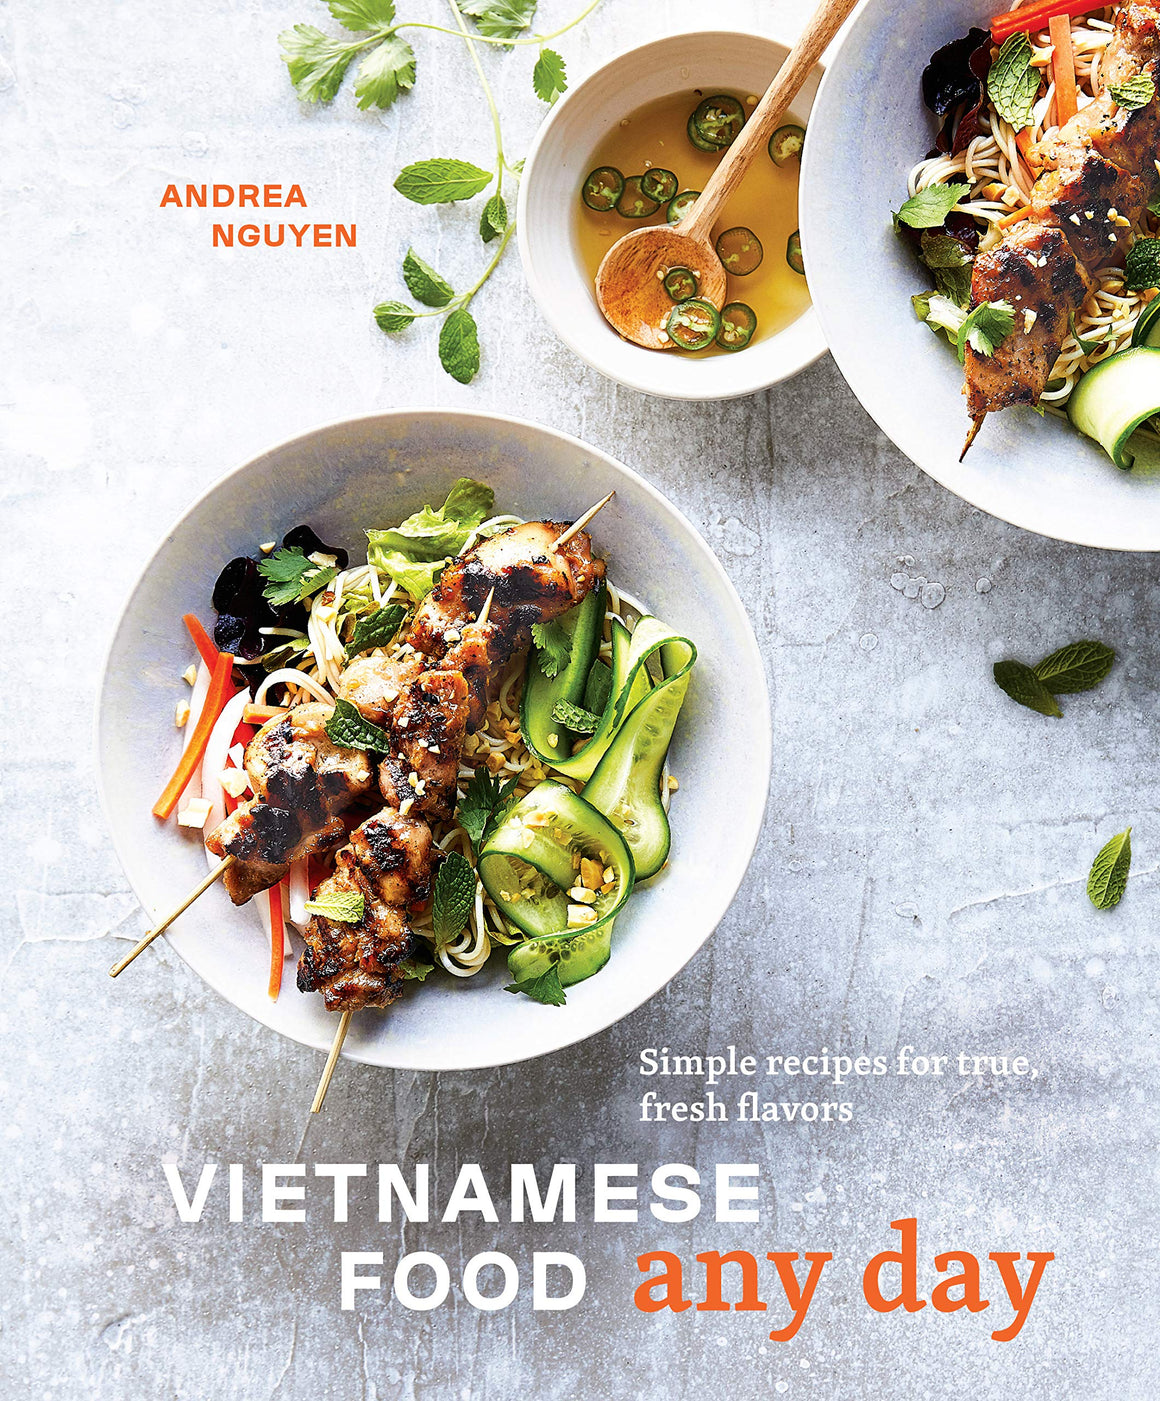 (Vietnamese) Andrea Nguyen. Vietnamese Food Any Day: Simple Recipes for True, Fresh Flavors